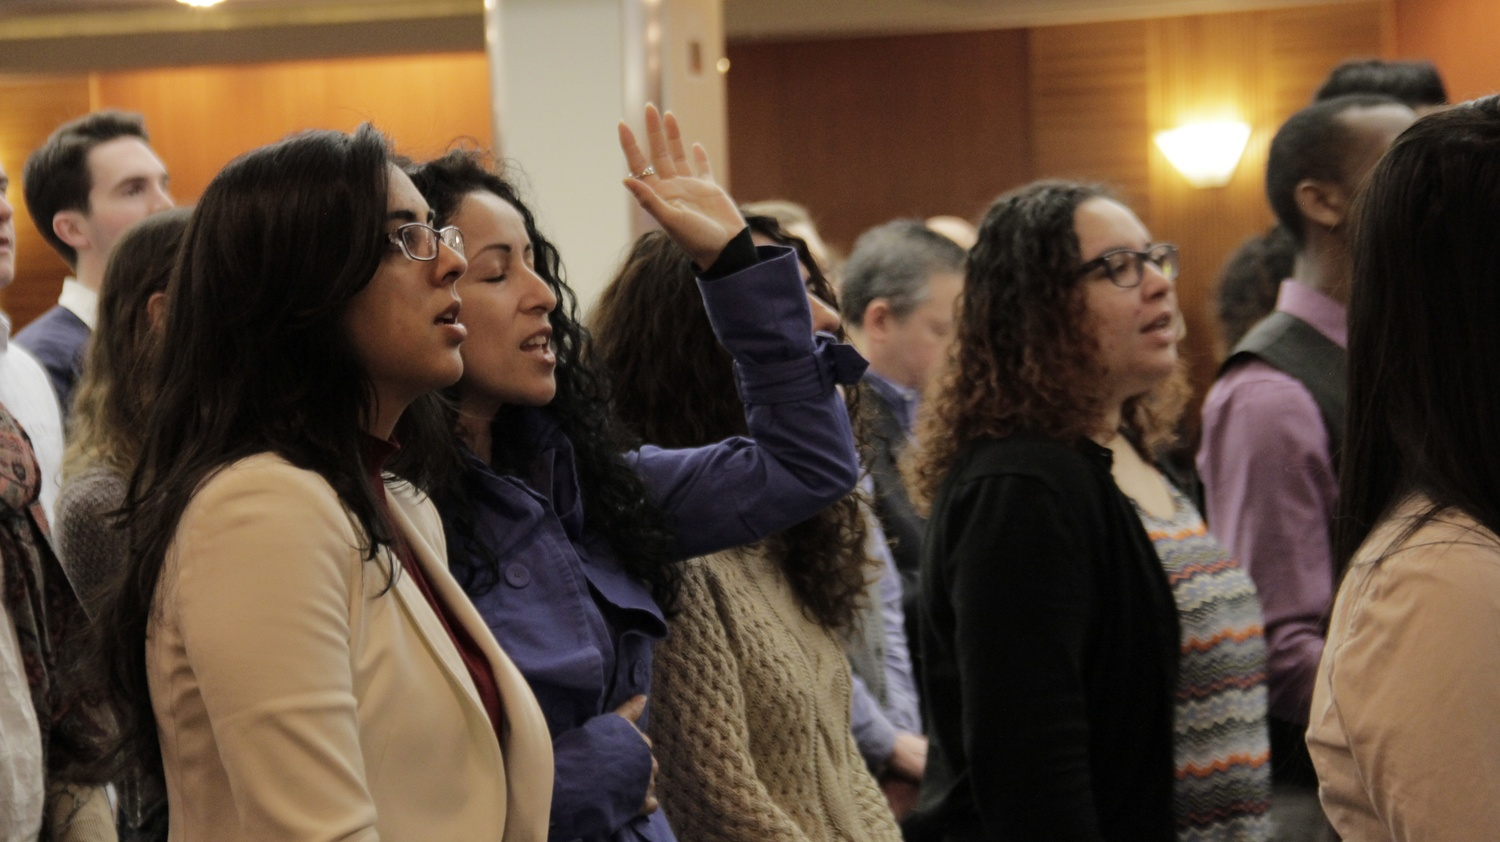 Members of the Boston Church of Christ sing at Sunday service on April 6.